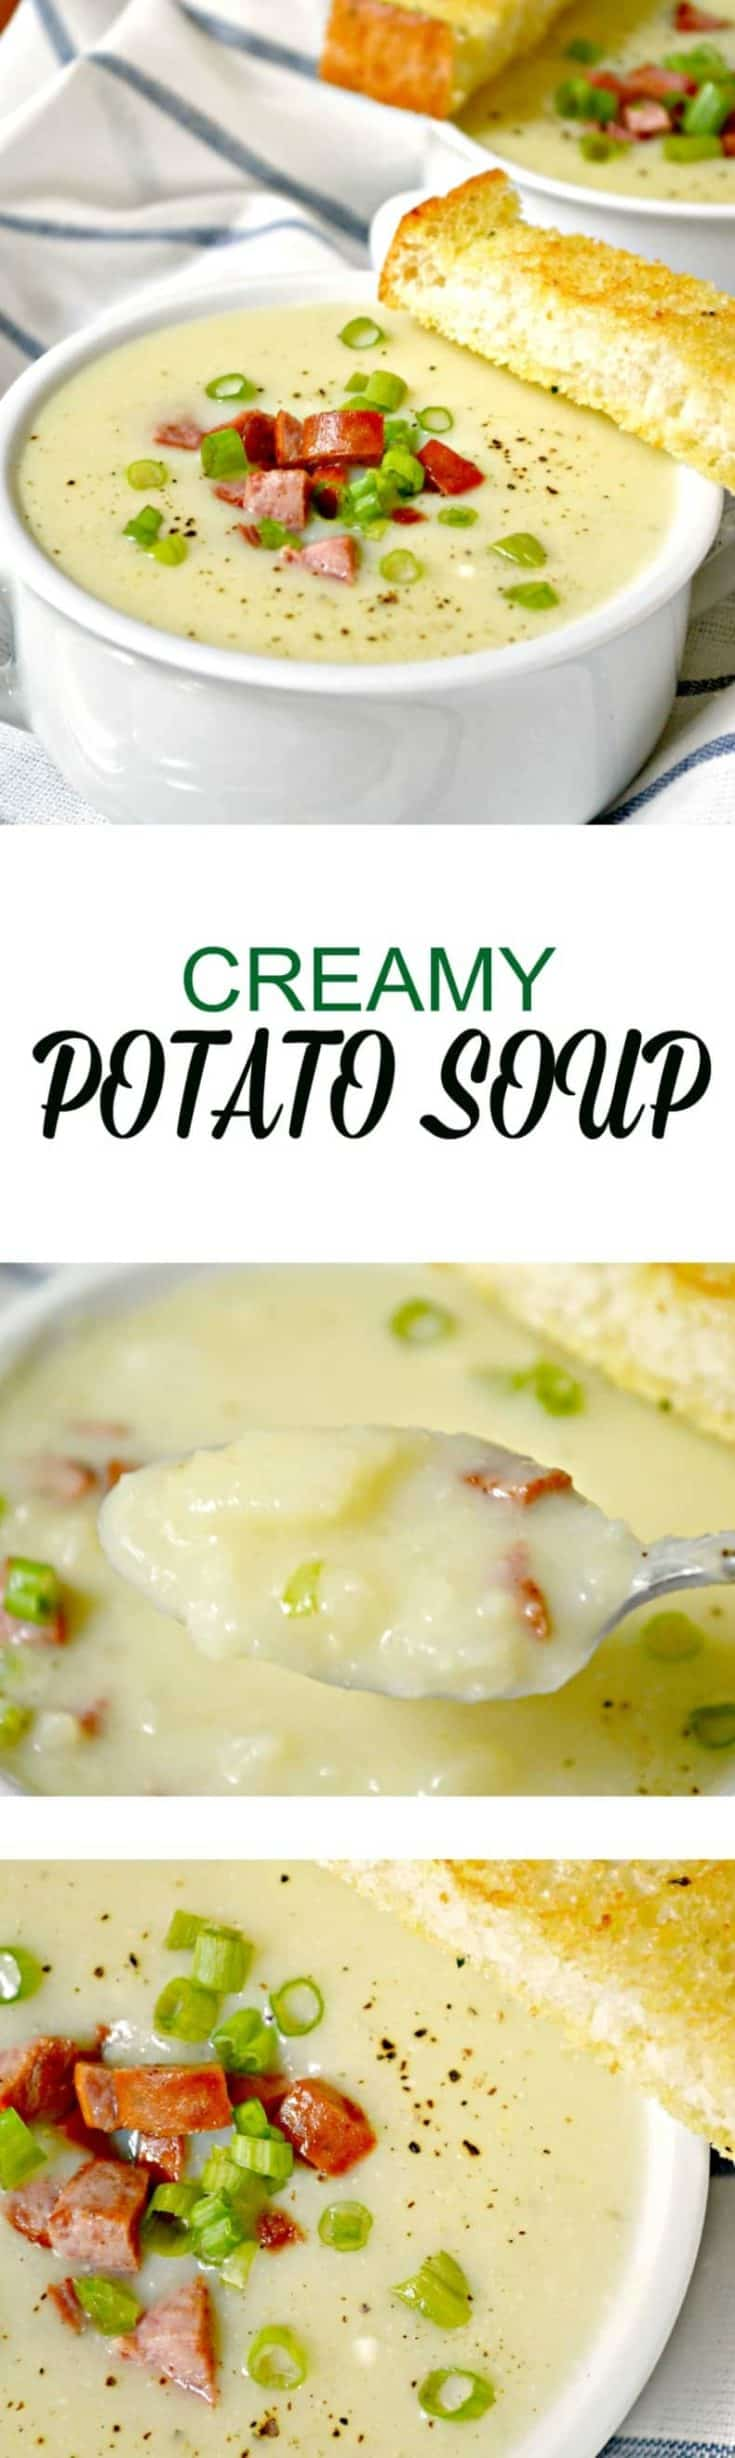 Creamy Potato Soup is guaranteed to warm you up from the inside, out. It has a rich and creamy taste thanks to the addition of cream cheese. #potatosoup #soup #souprecipe